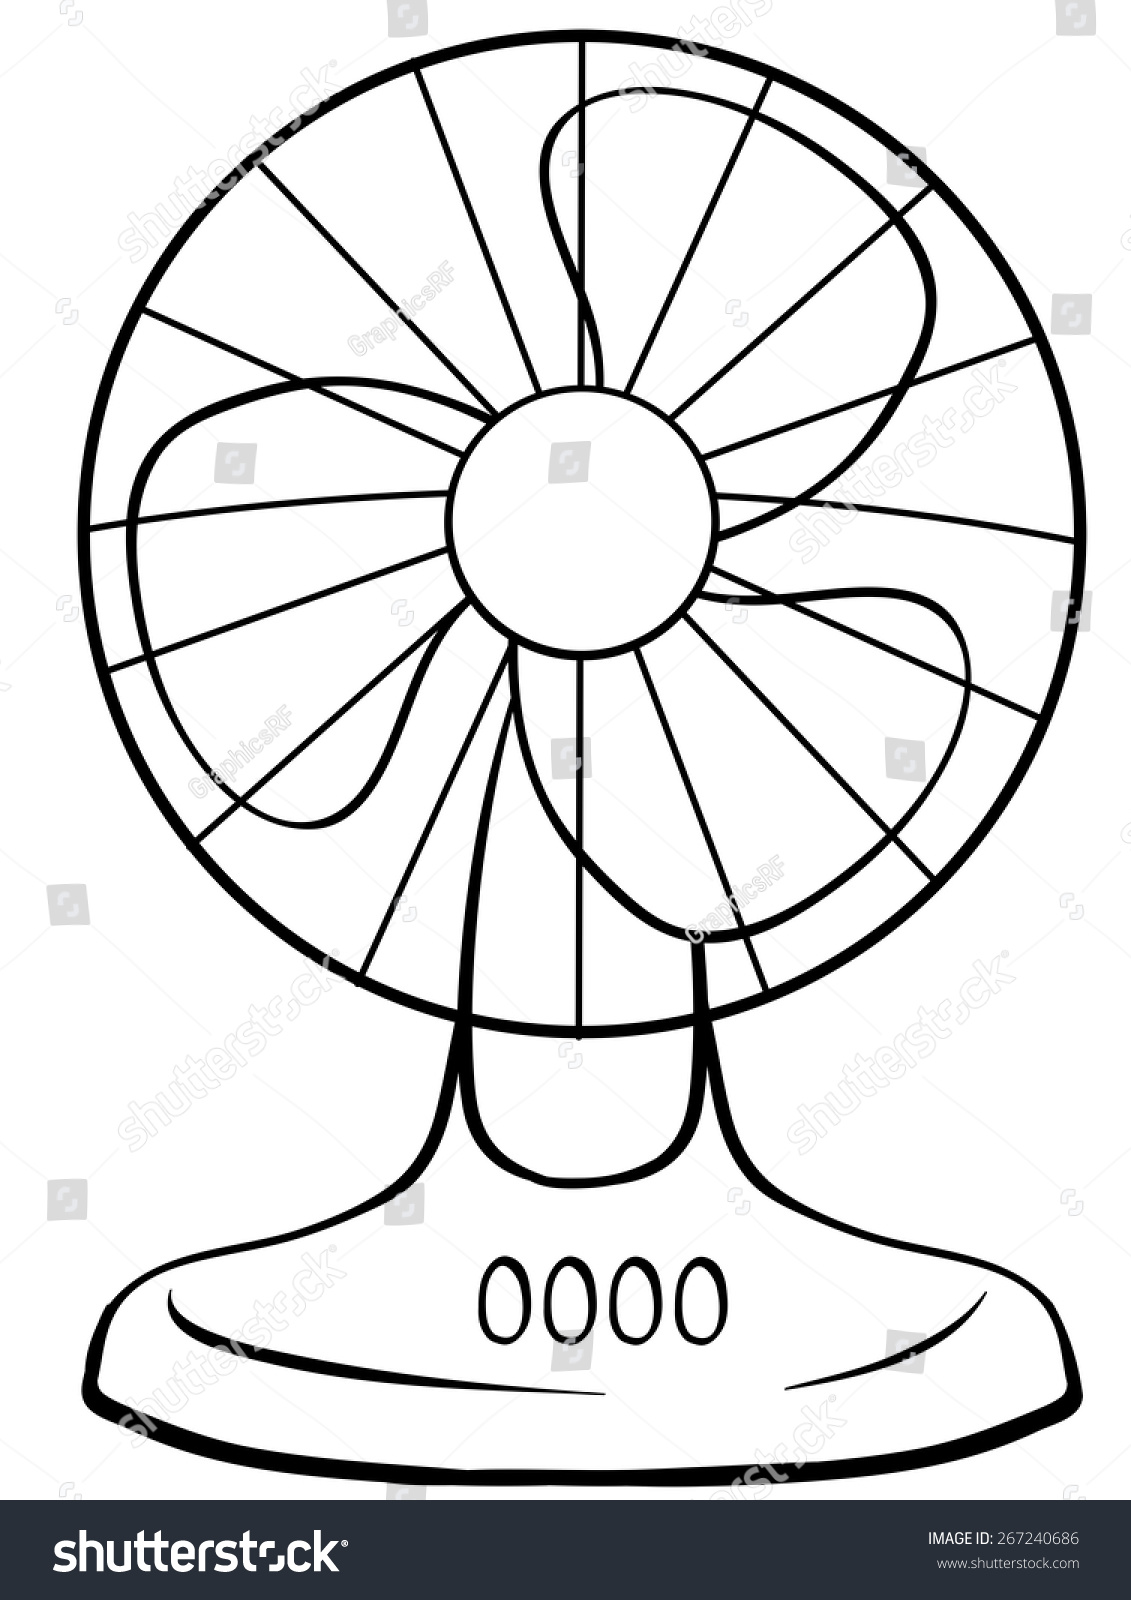 Fan Clipart Black And White.